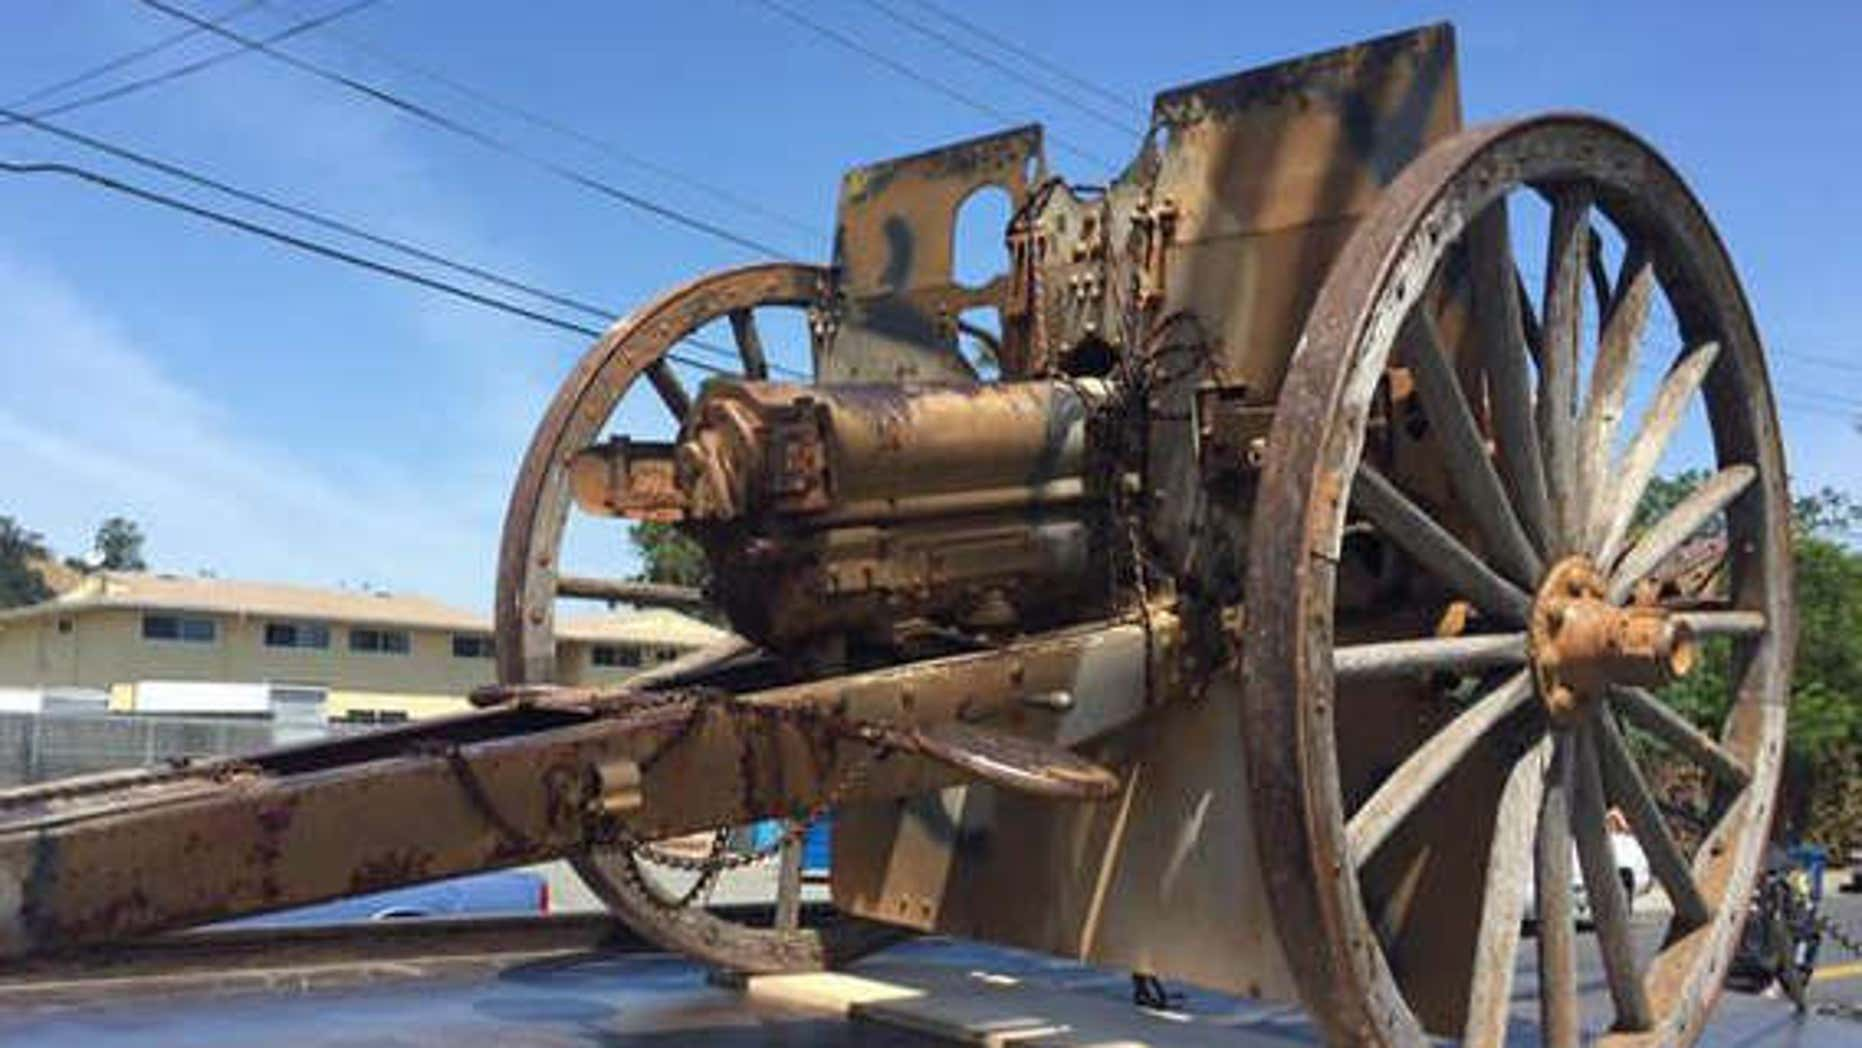 Picture shows the cannon that was stolen from a California veterans hall.